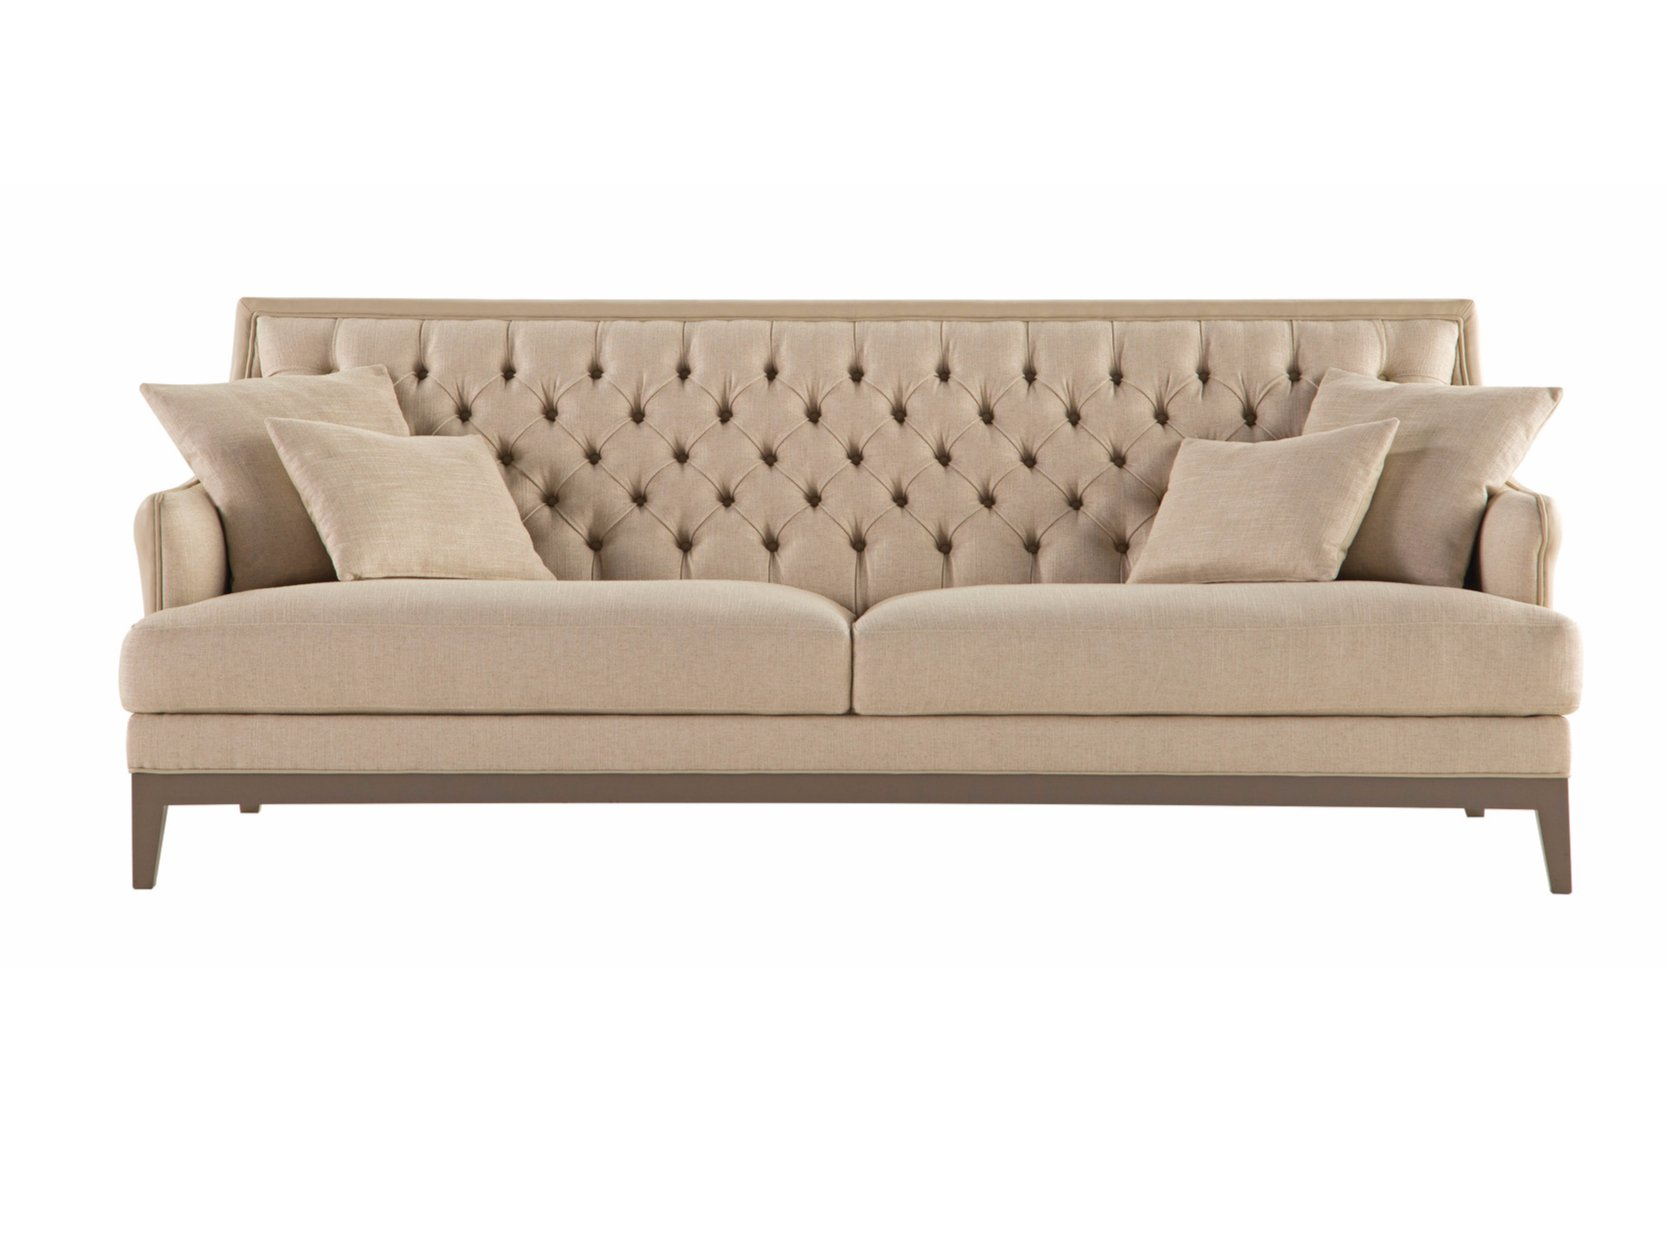 Epoq canap collection epoq by roche bobois design les for Canape roche bobois cuir